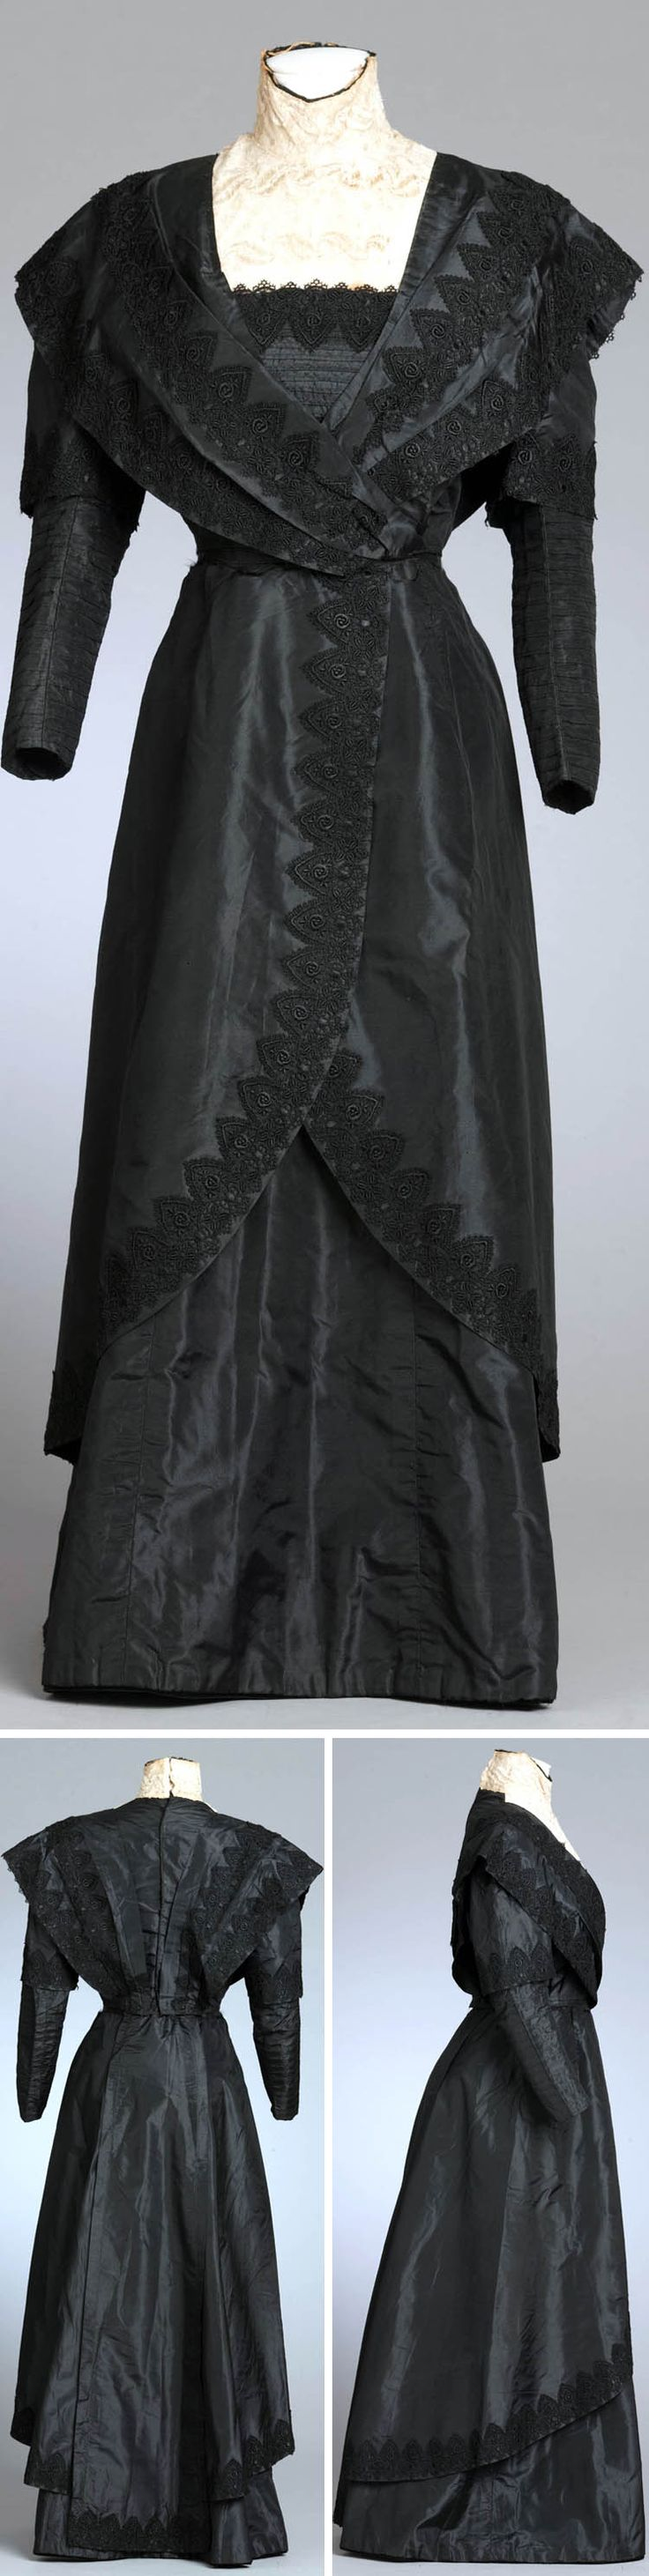 "Although this dress looks quintessentially Edwardian, the New Zealand Fashion Museum dates it to 1892. Black silk, black & cream lace, cotton lining, boning. ""This late-Victorian dress demonstrates the levels of luxury attainable by a small-town storekeeper's wife at the end of the 19th century,"" the museum says."